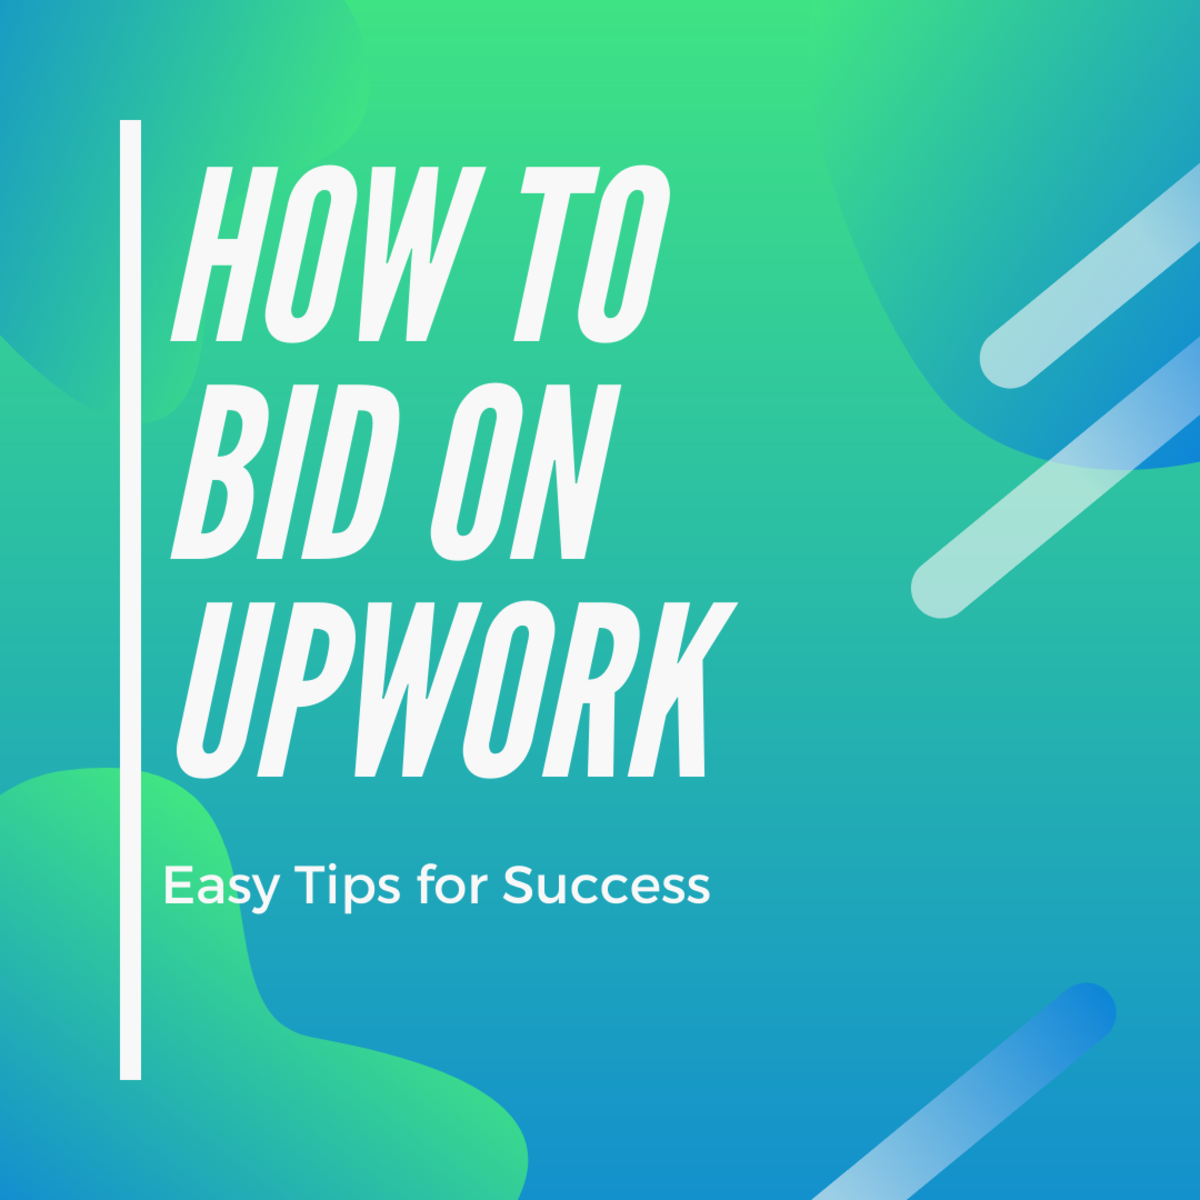 Bidding on Upwork can be confusing. Here's how to do it the right way!